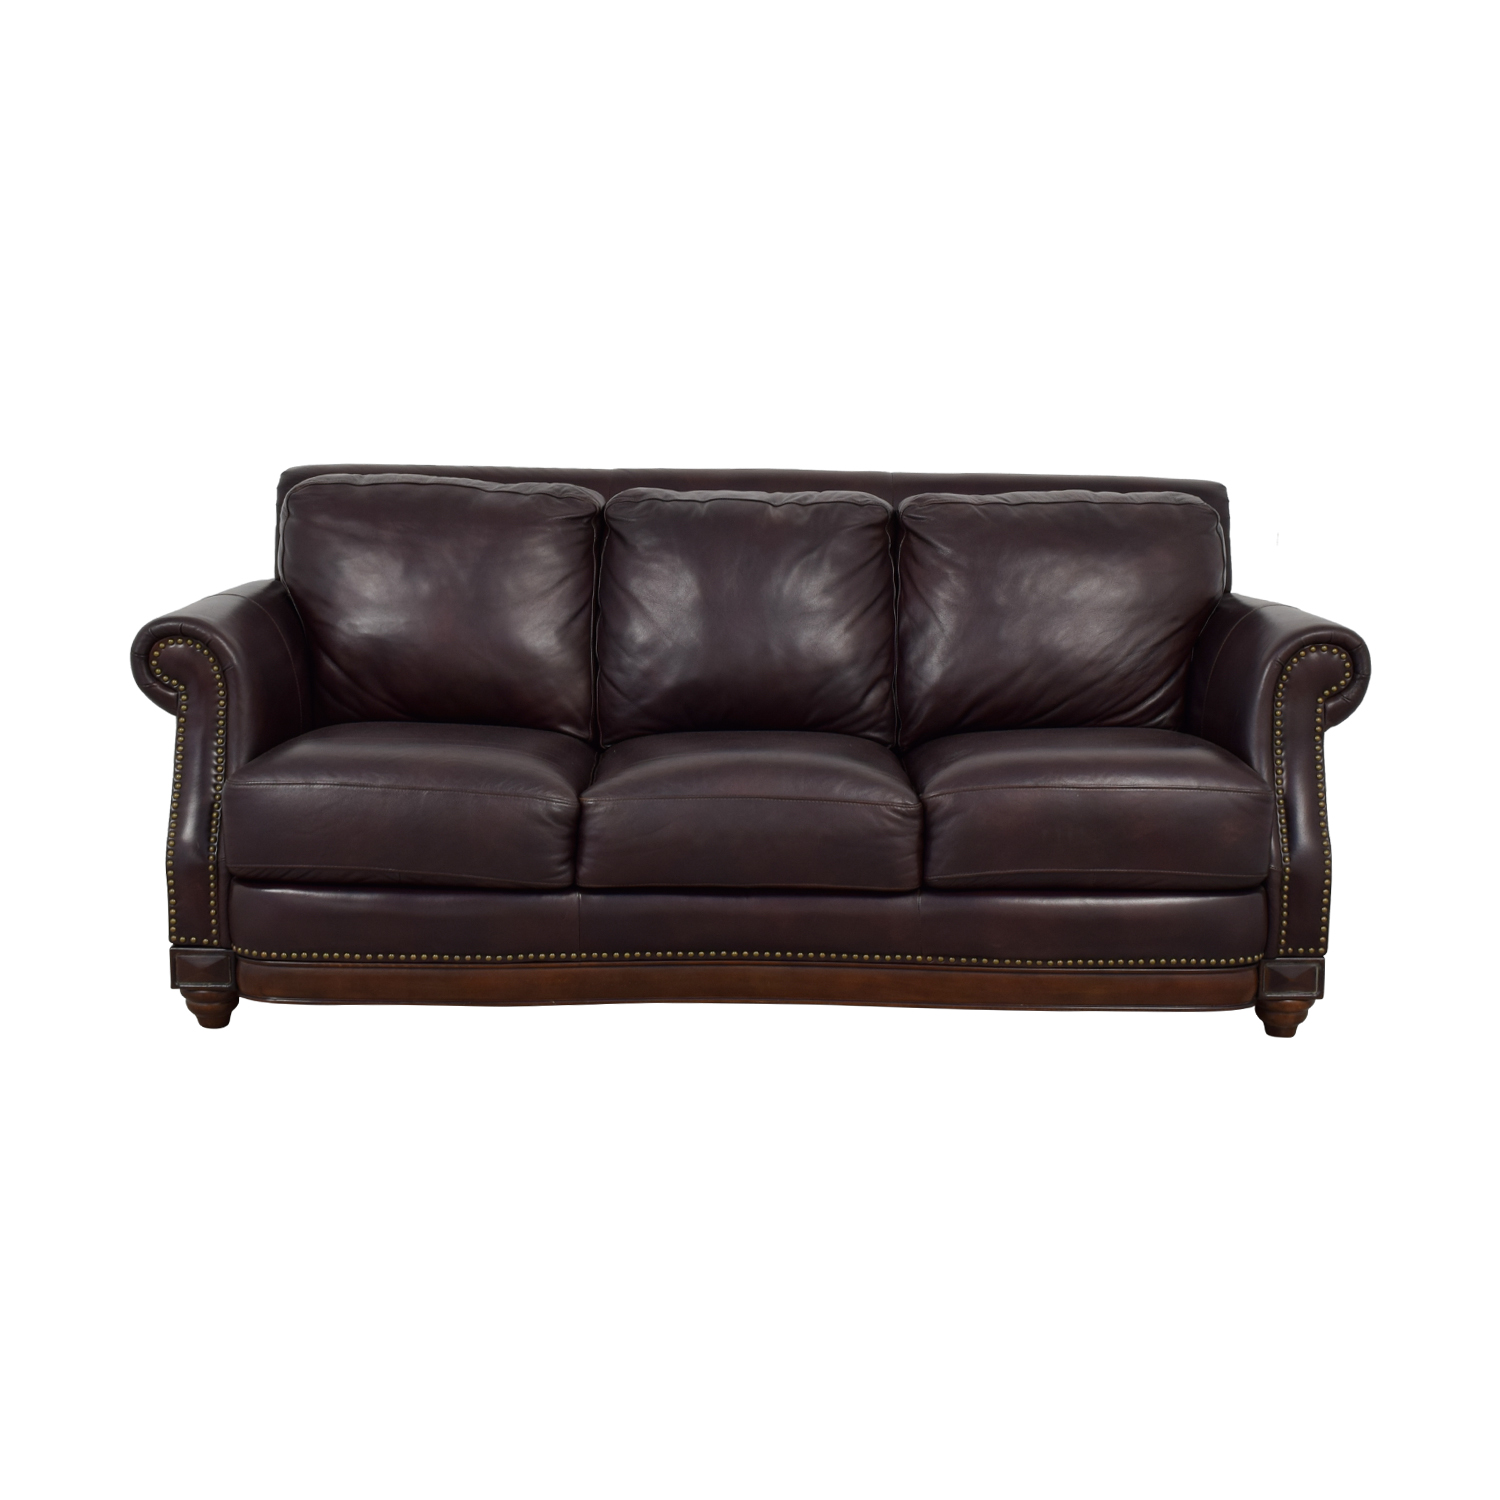 Raymour & Flanigan Raymour & Flanigan Brown Leather Nailhead Sofa coupon